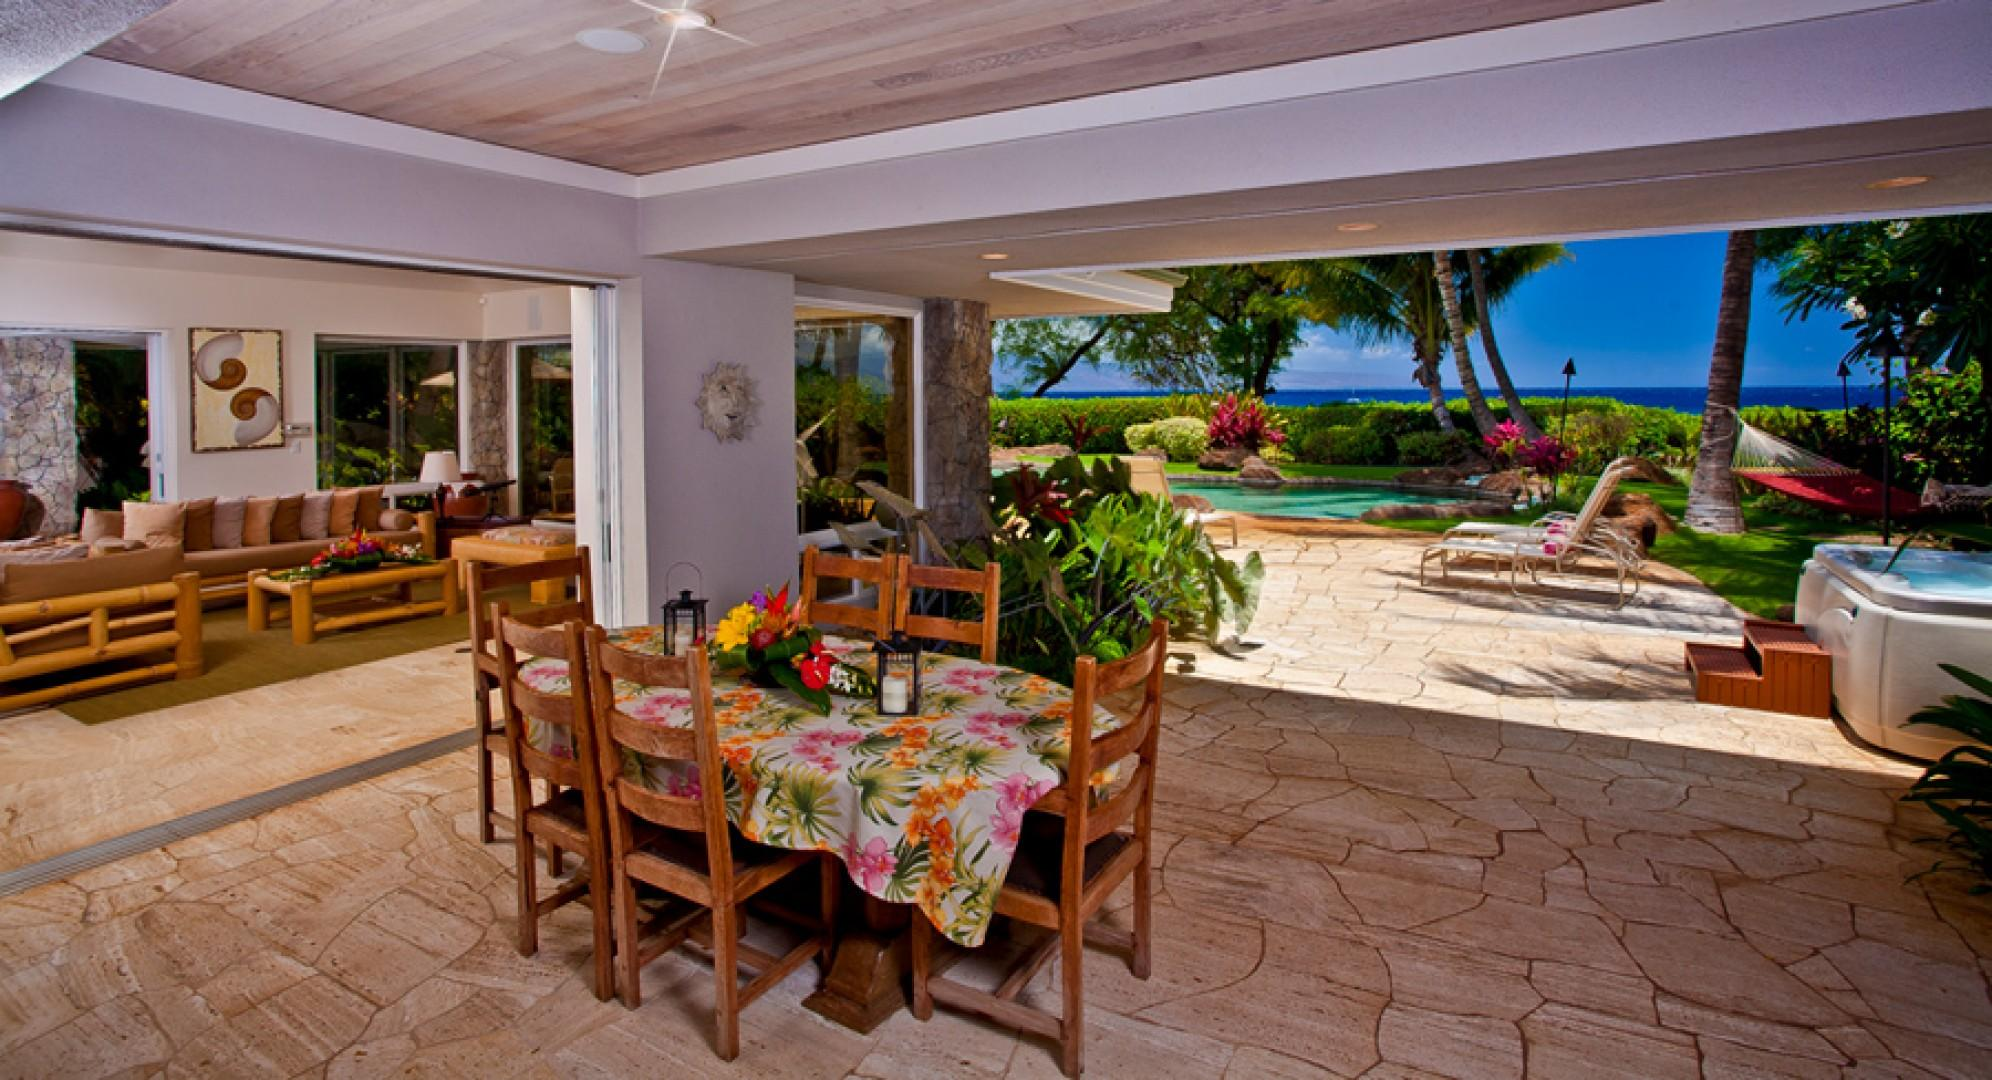 Sea Shells Beach House - Covered Outdoor Casual Dining and BBQ Area